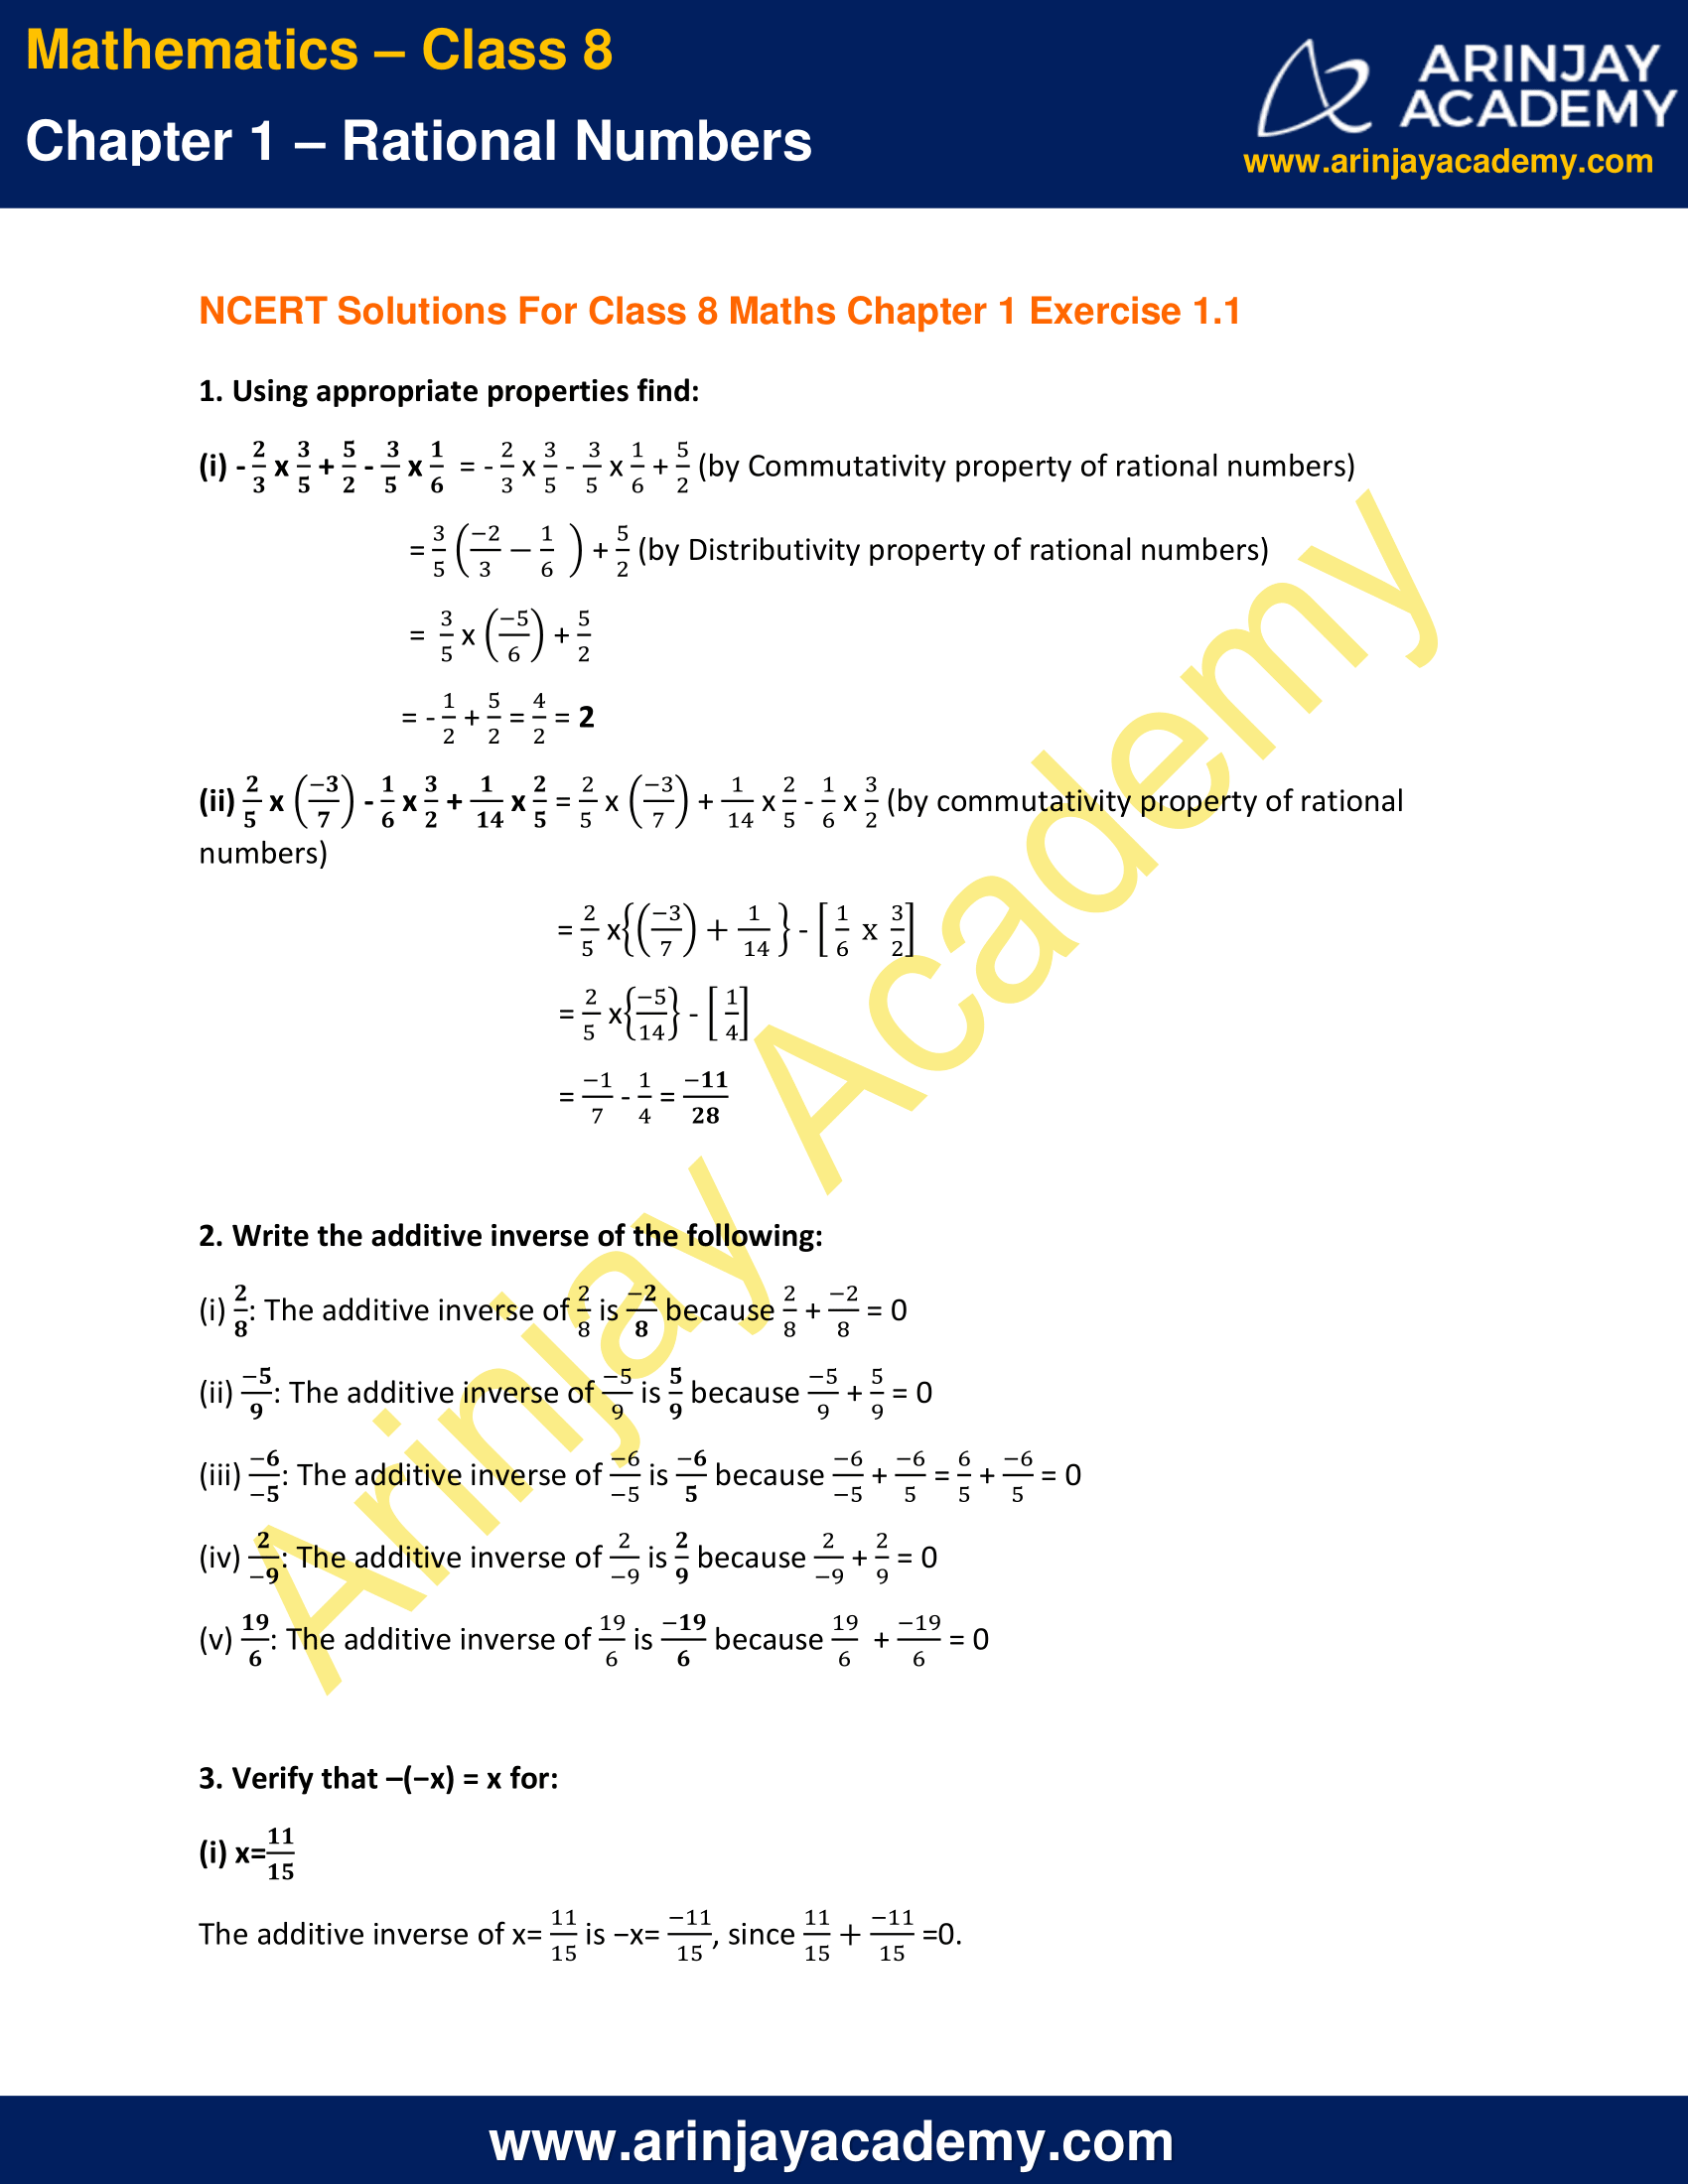 NCERT Solutions for Class 8 Maths Chapter 1 Exercise 1.1 image 1